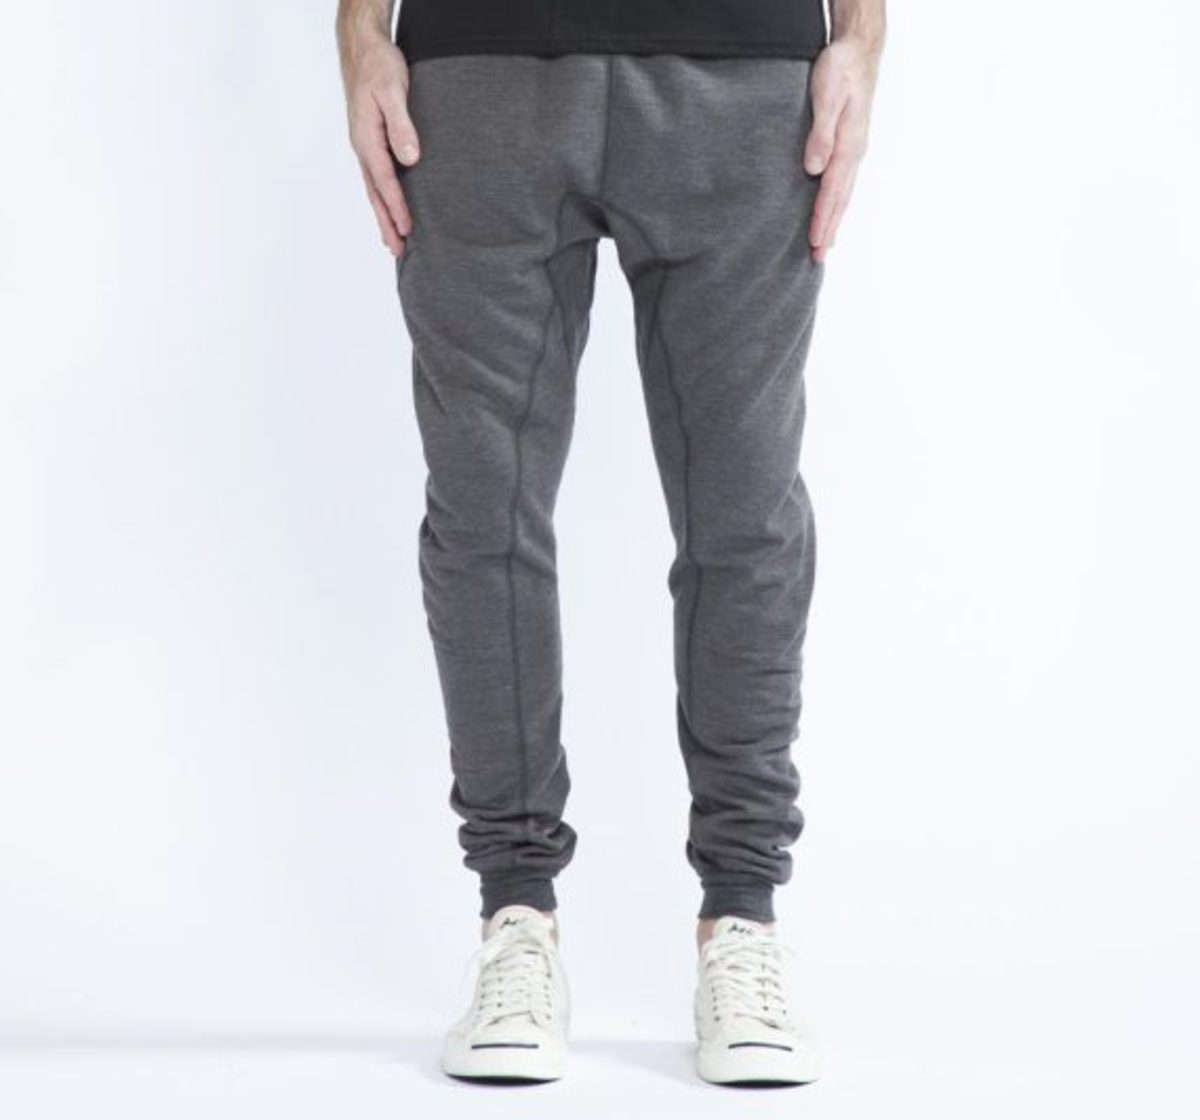 12-days-freshness-publish-brand-joggers-fleece-collection-01